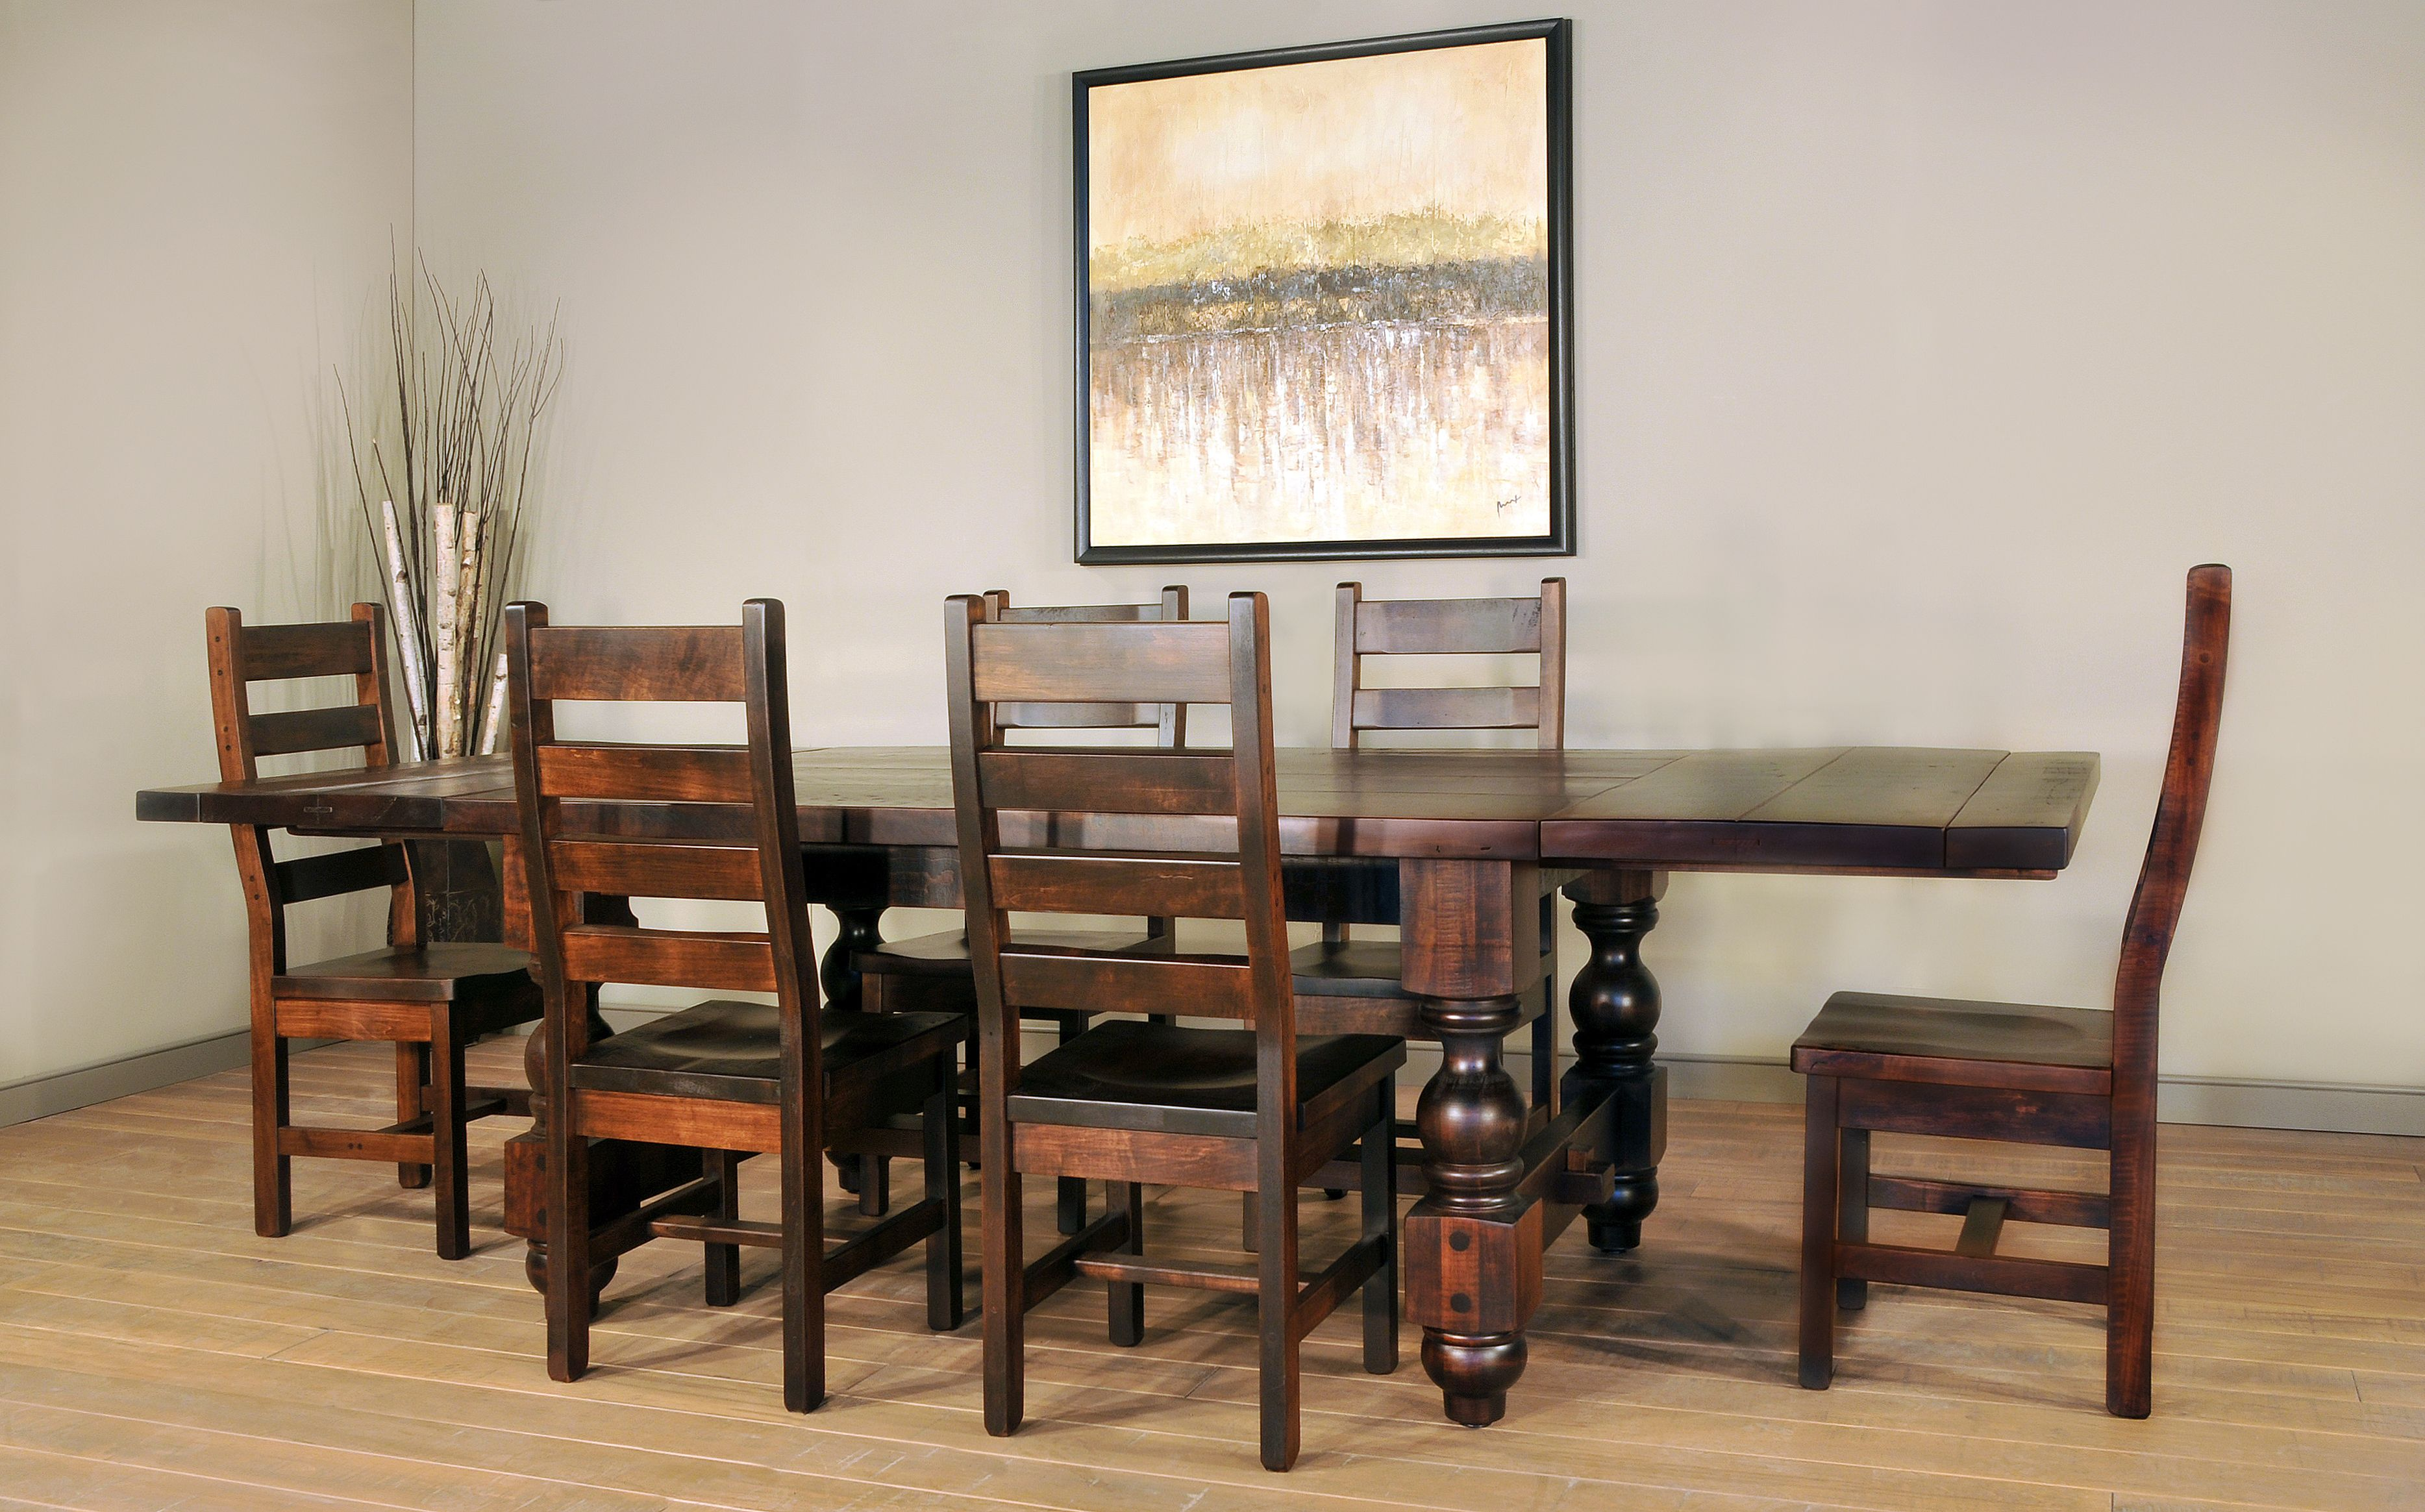 Toledo Table Chairs Rustic Furniture Dining Room Kitchen Upgrades Woodworking Techniques